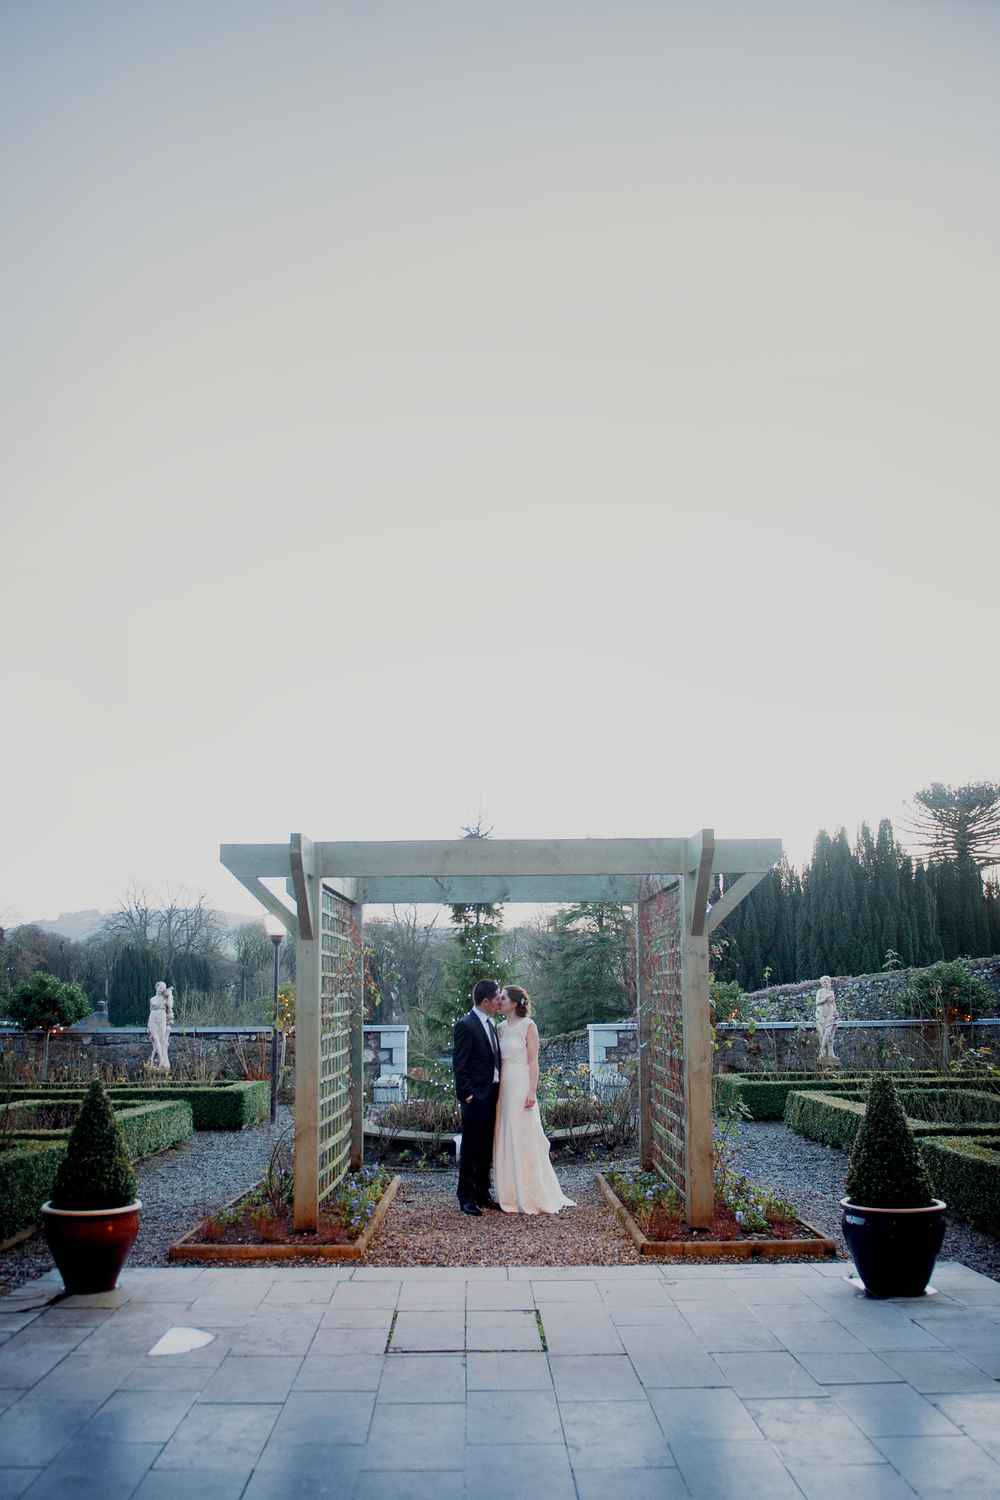 Wedding Photography Ireland Castle Durrow Laois Irish Wedding Photographer 135.jpg